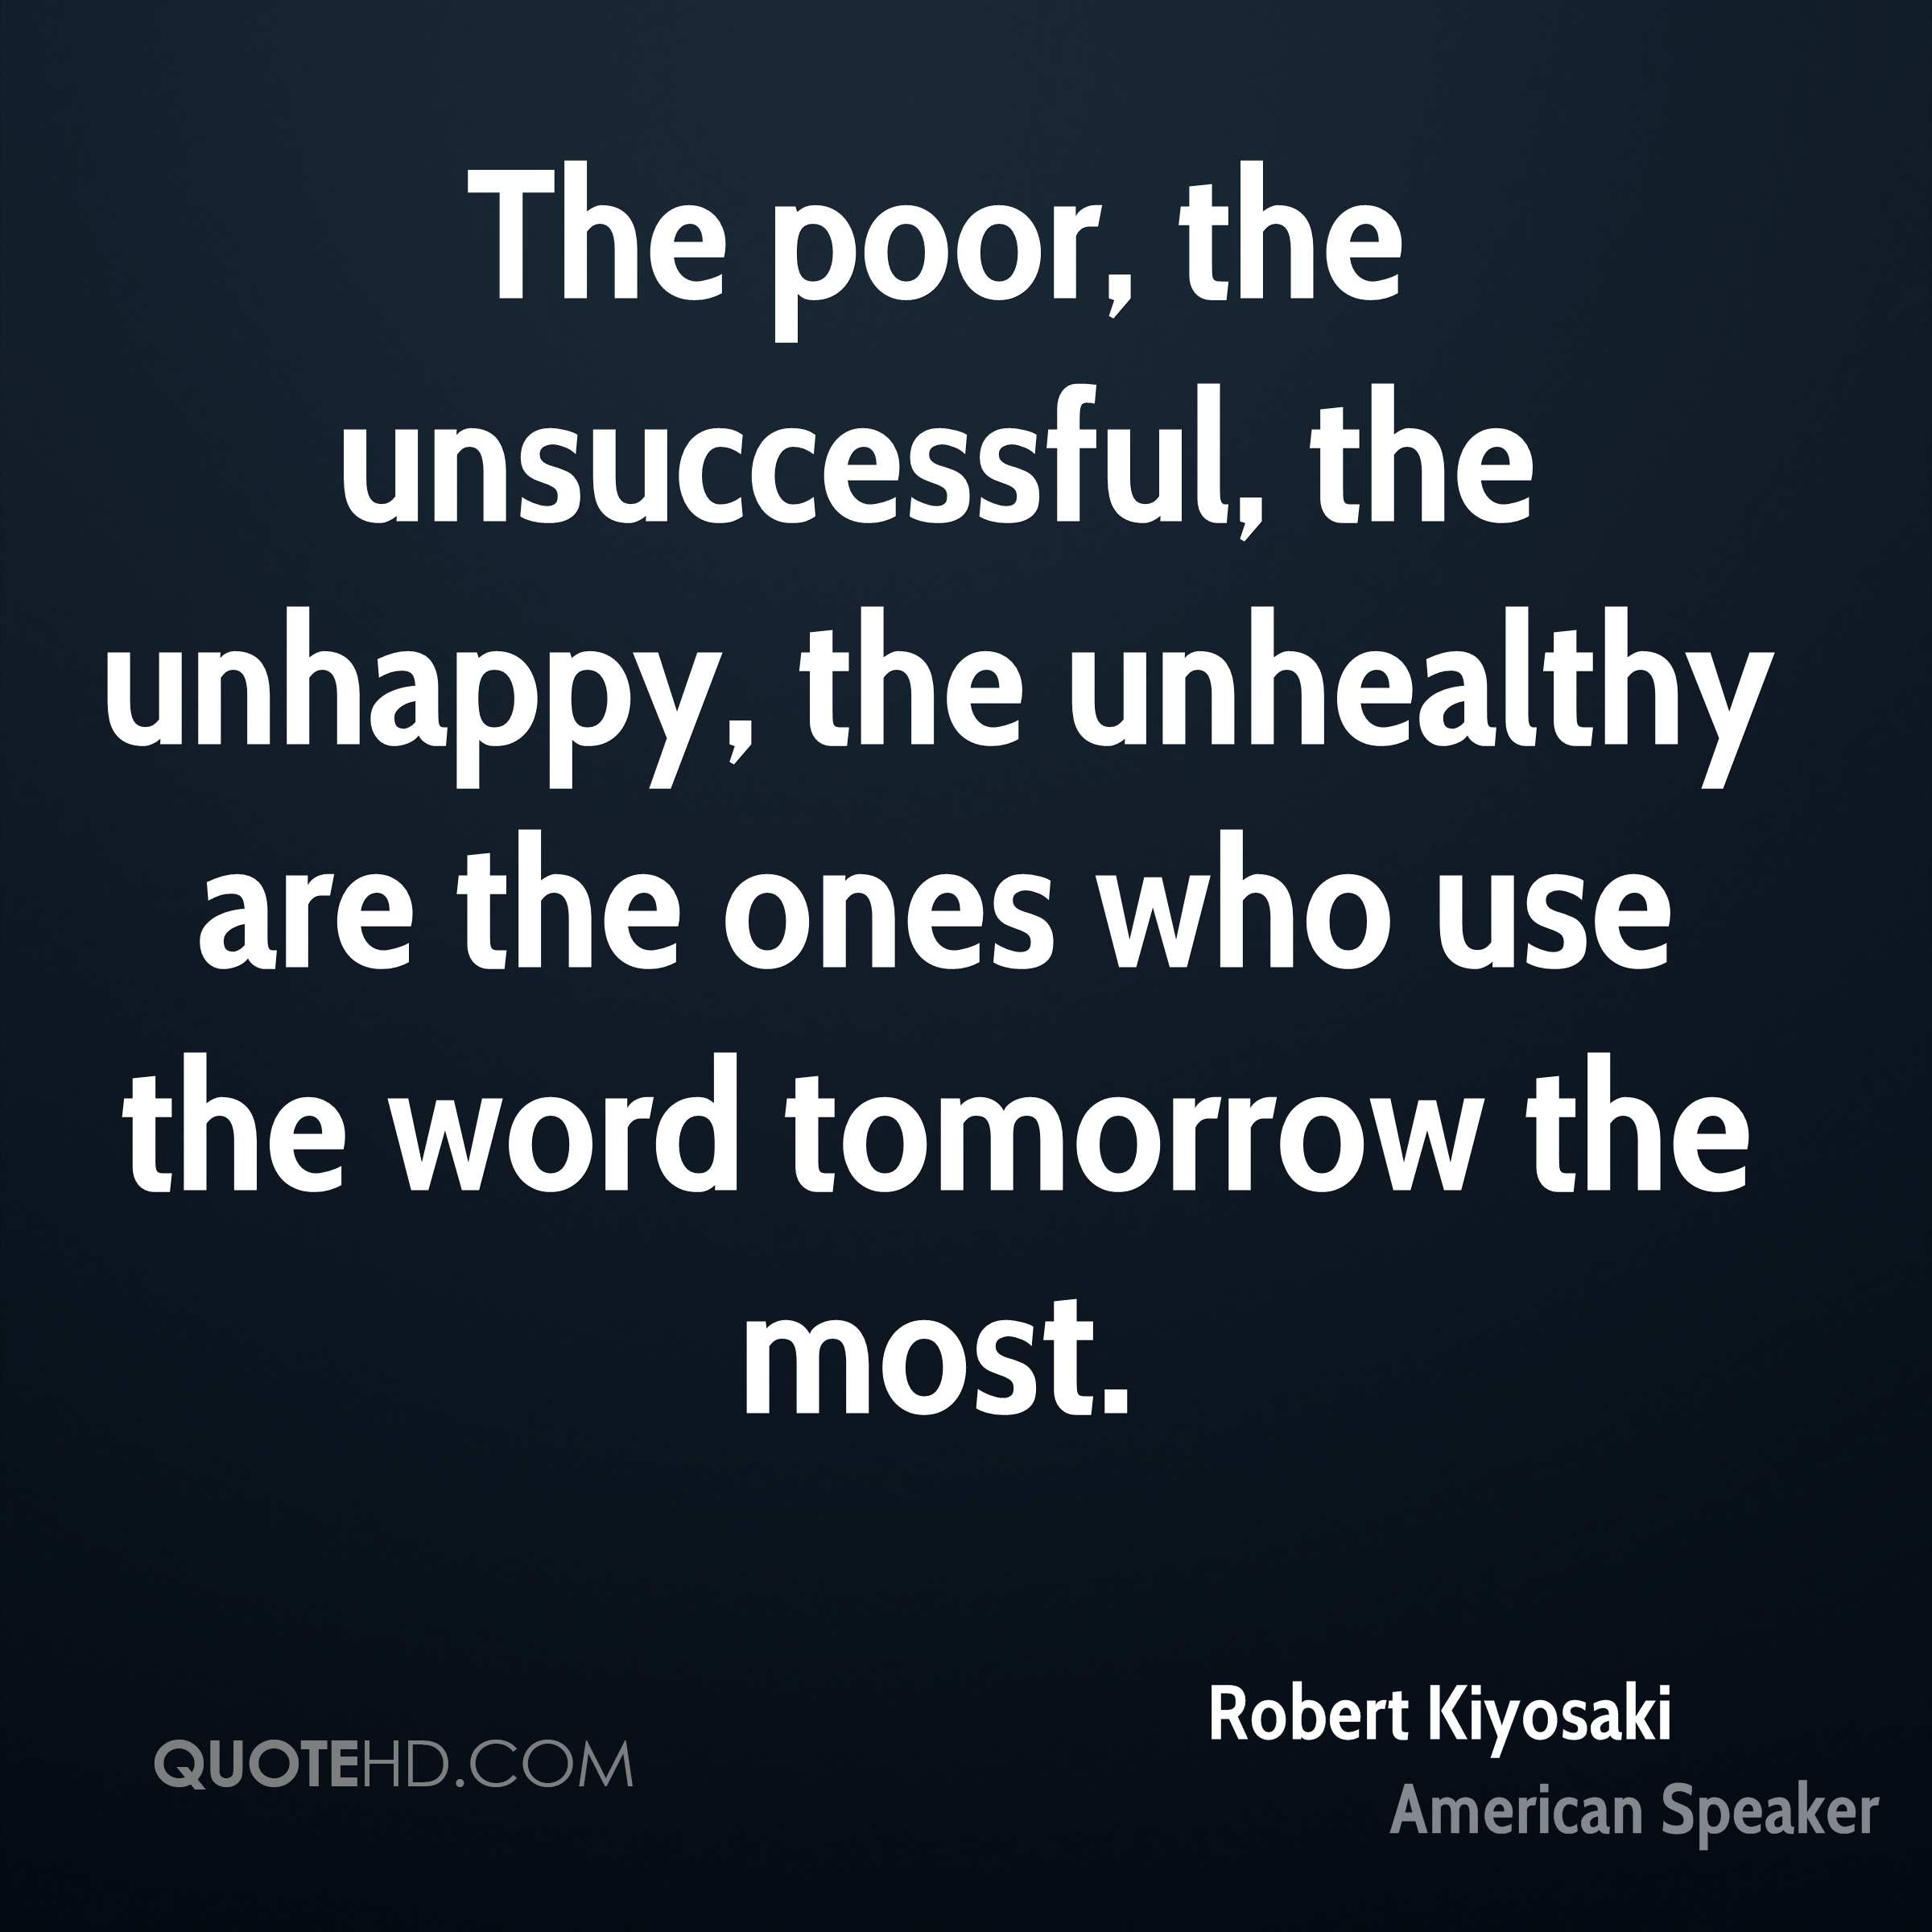 The poor, the unsuccessful, the unhappy, the unhealthy are the ones who use the word tomorrow the most.